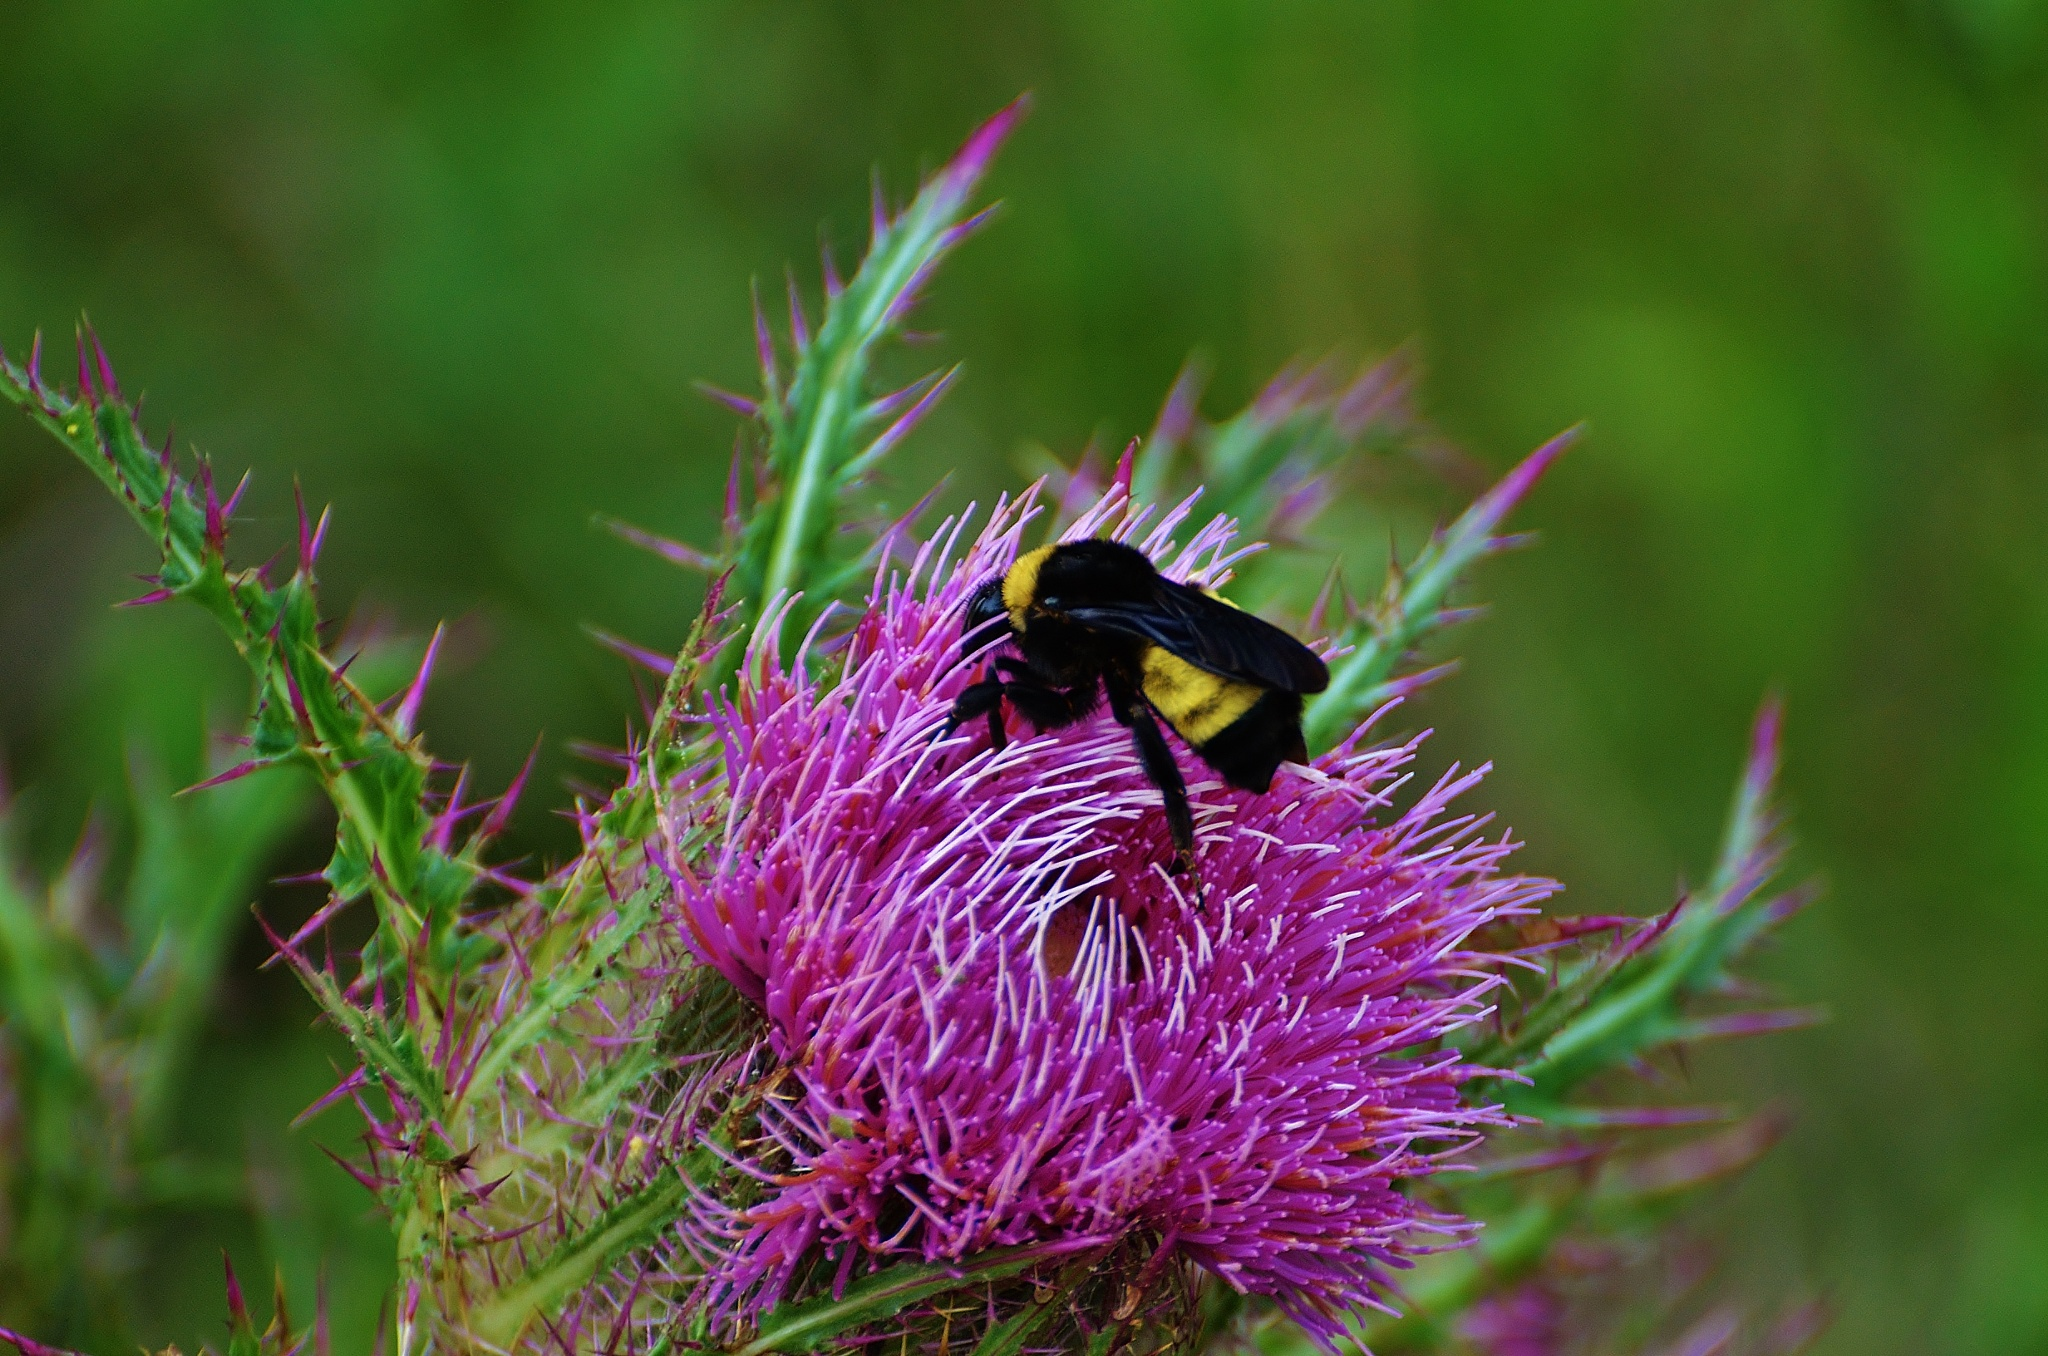 Bumble Bee On Thistle  6413 by Jim Suter